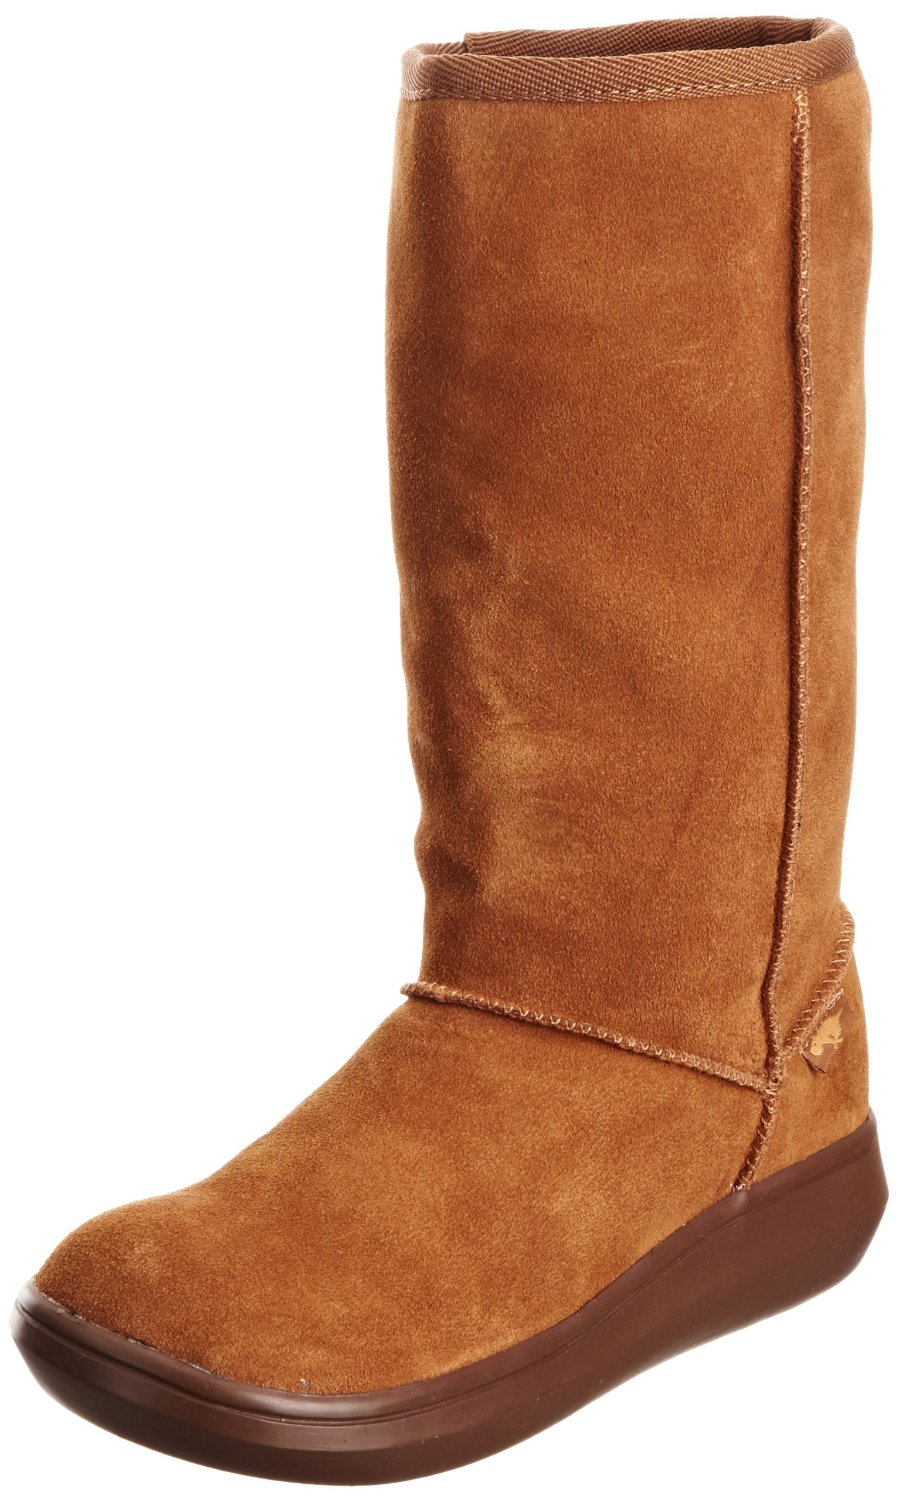 Rocket-Dog-Sugardaddy-Chestnut-Suede-New-Womens-Hi-Winter-Shoes-Boots